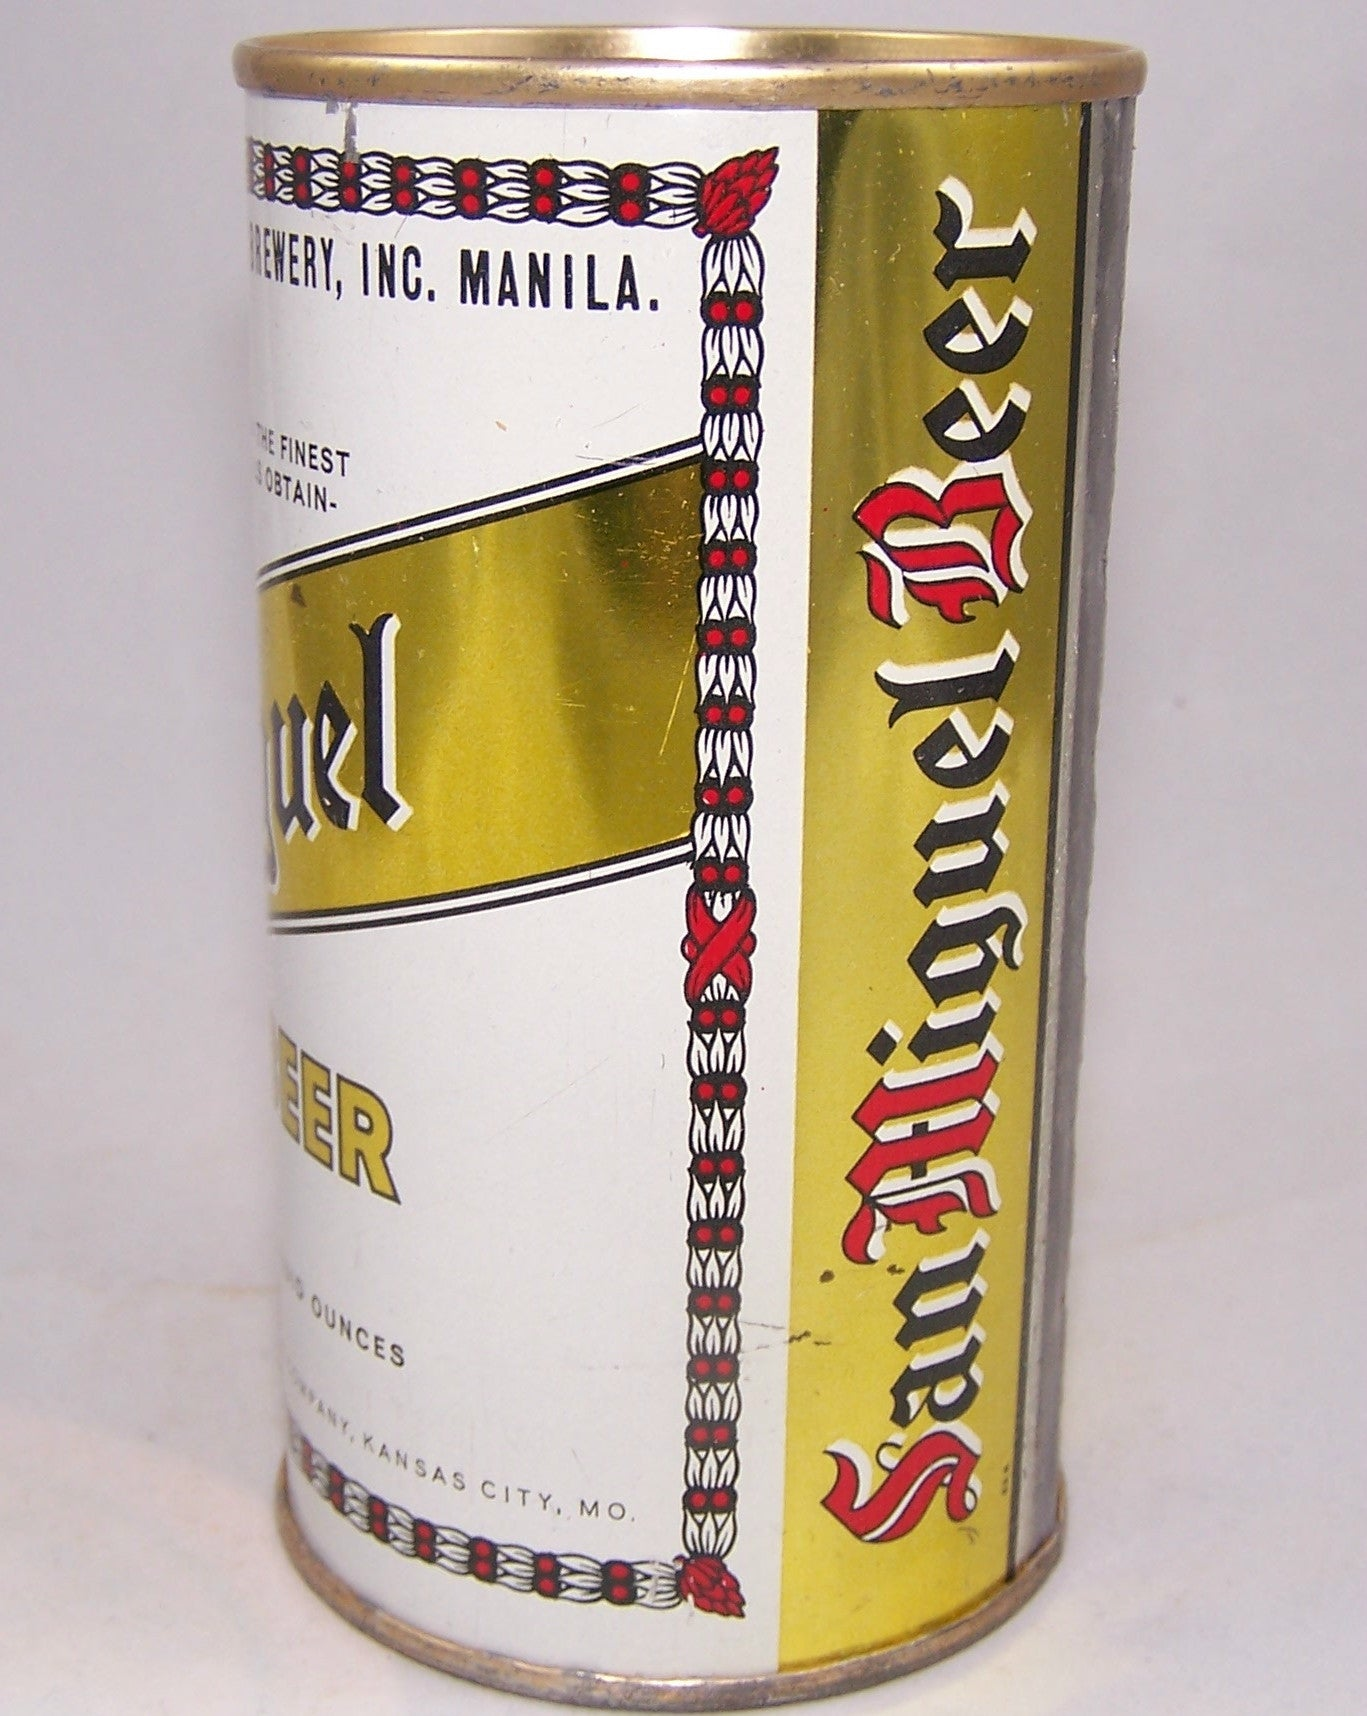 San Miguel Beer, USBC 127-12, Grade 1/1+ Sold on 03/04/16